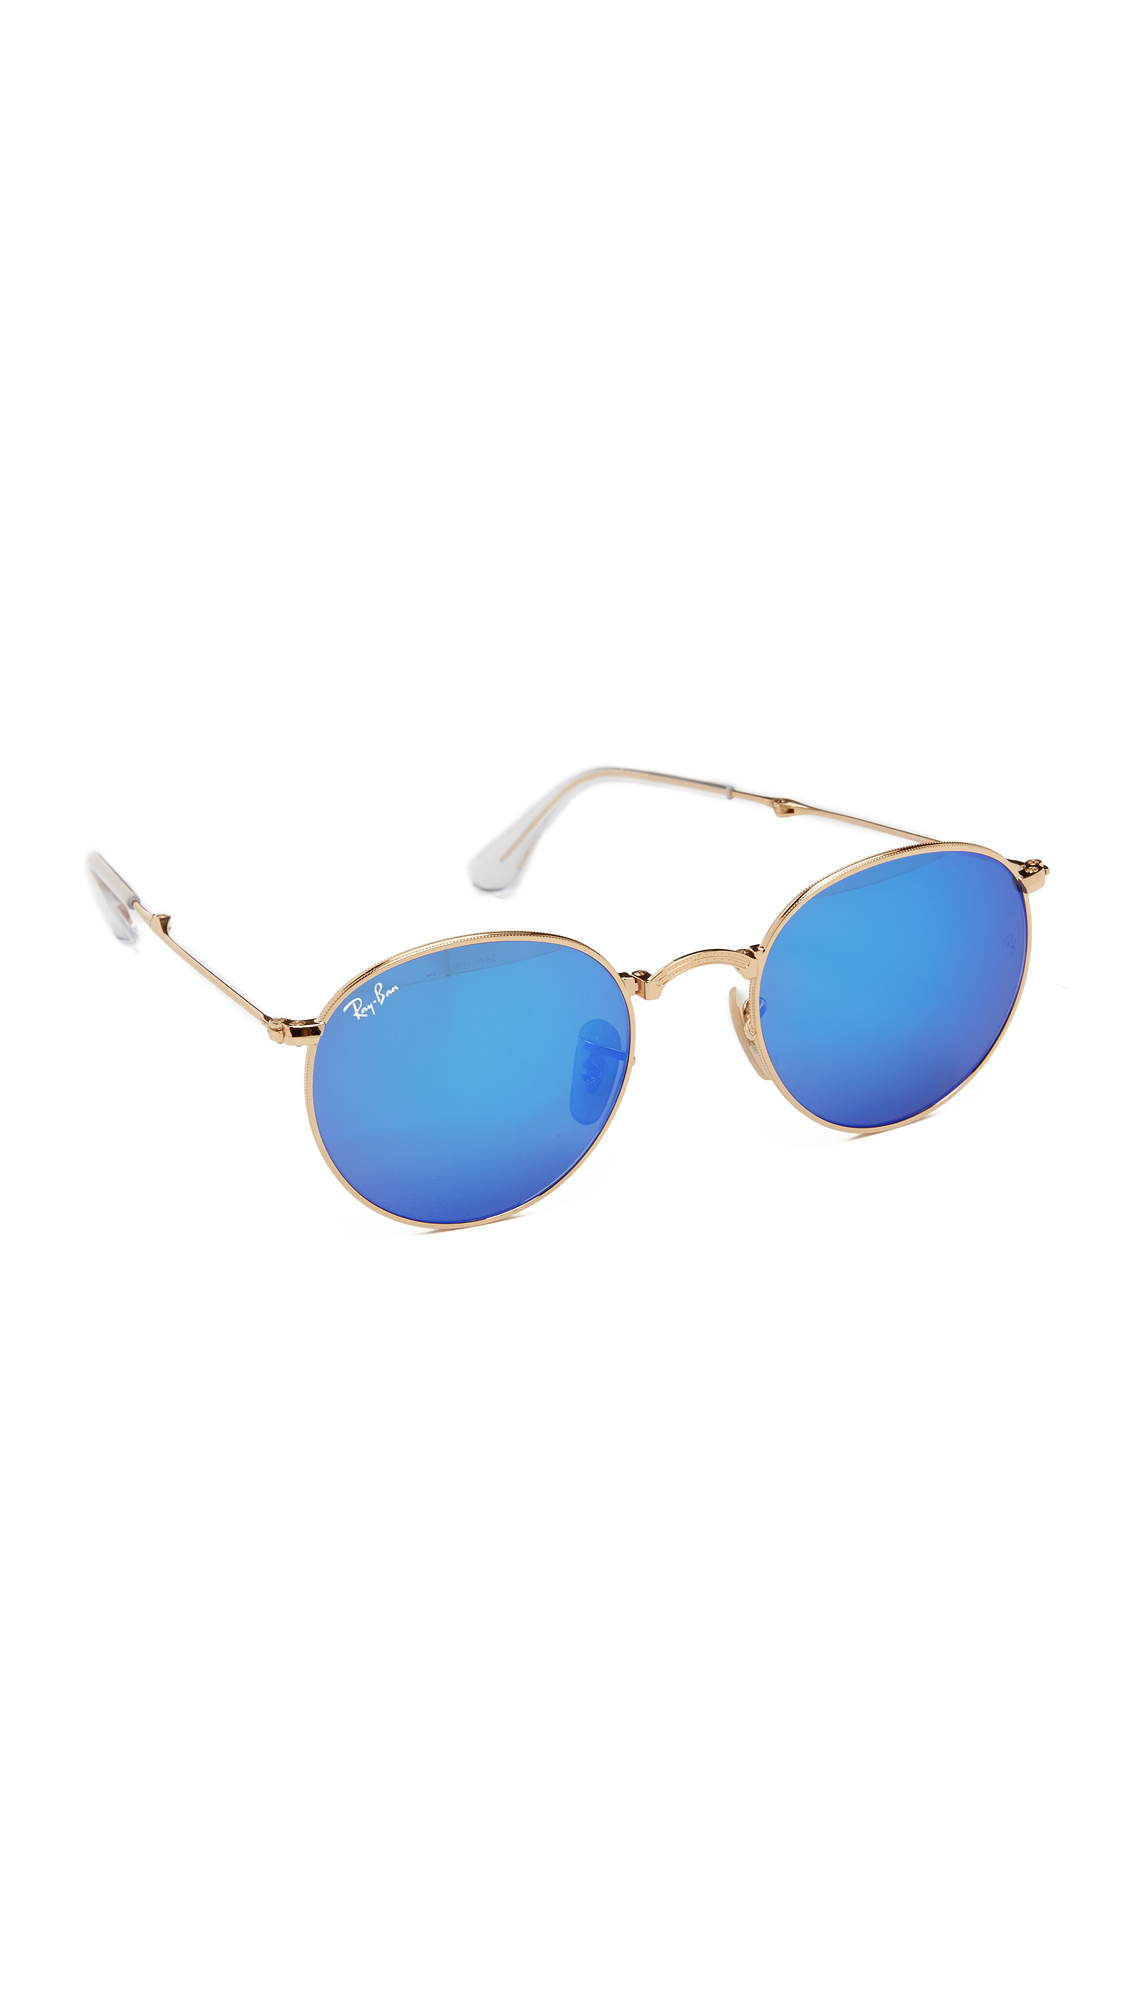 dc533fbdbf Lyst - Ray-Ban Icons Mirrored Round Sunglasses in Metallic